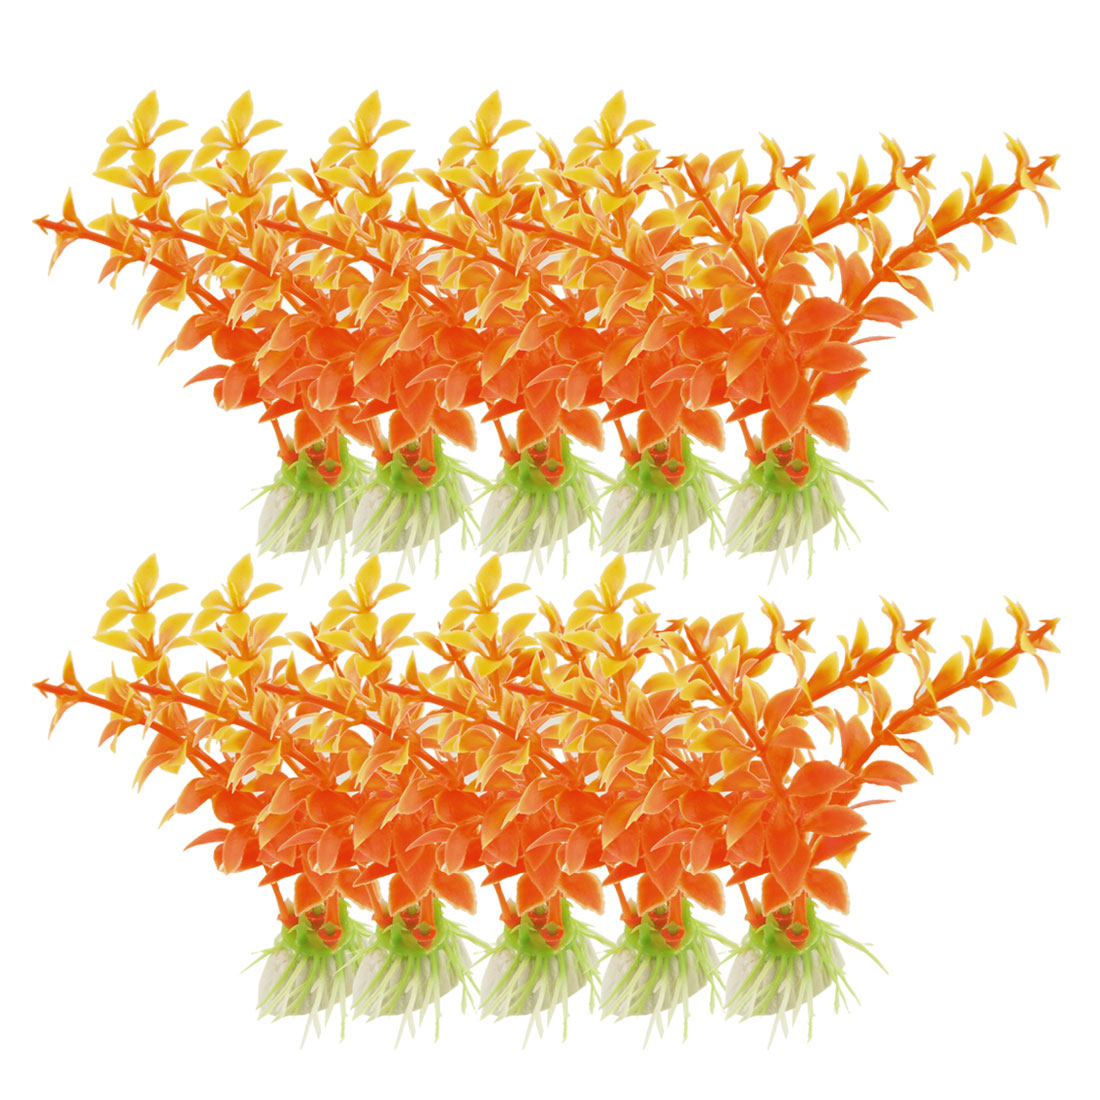 10 Pcs Fish Tank Orange Red Yellow Emulational Plant Grass Decor